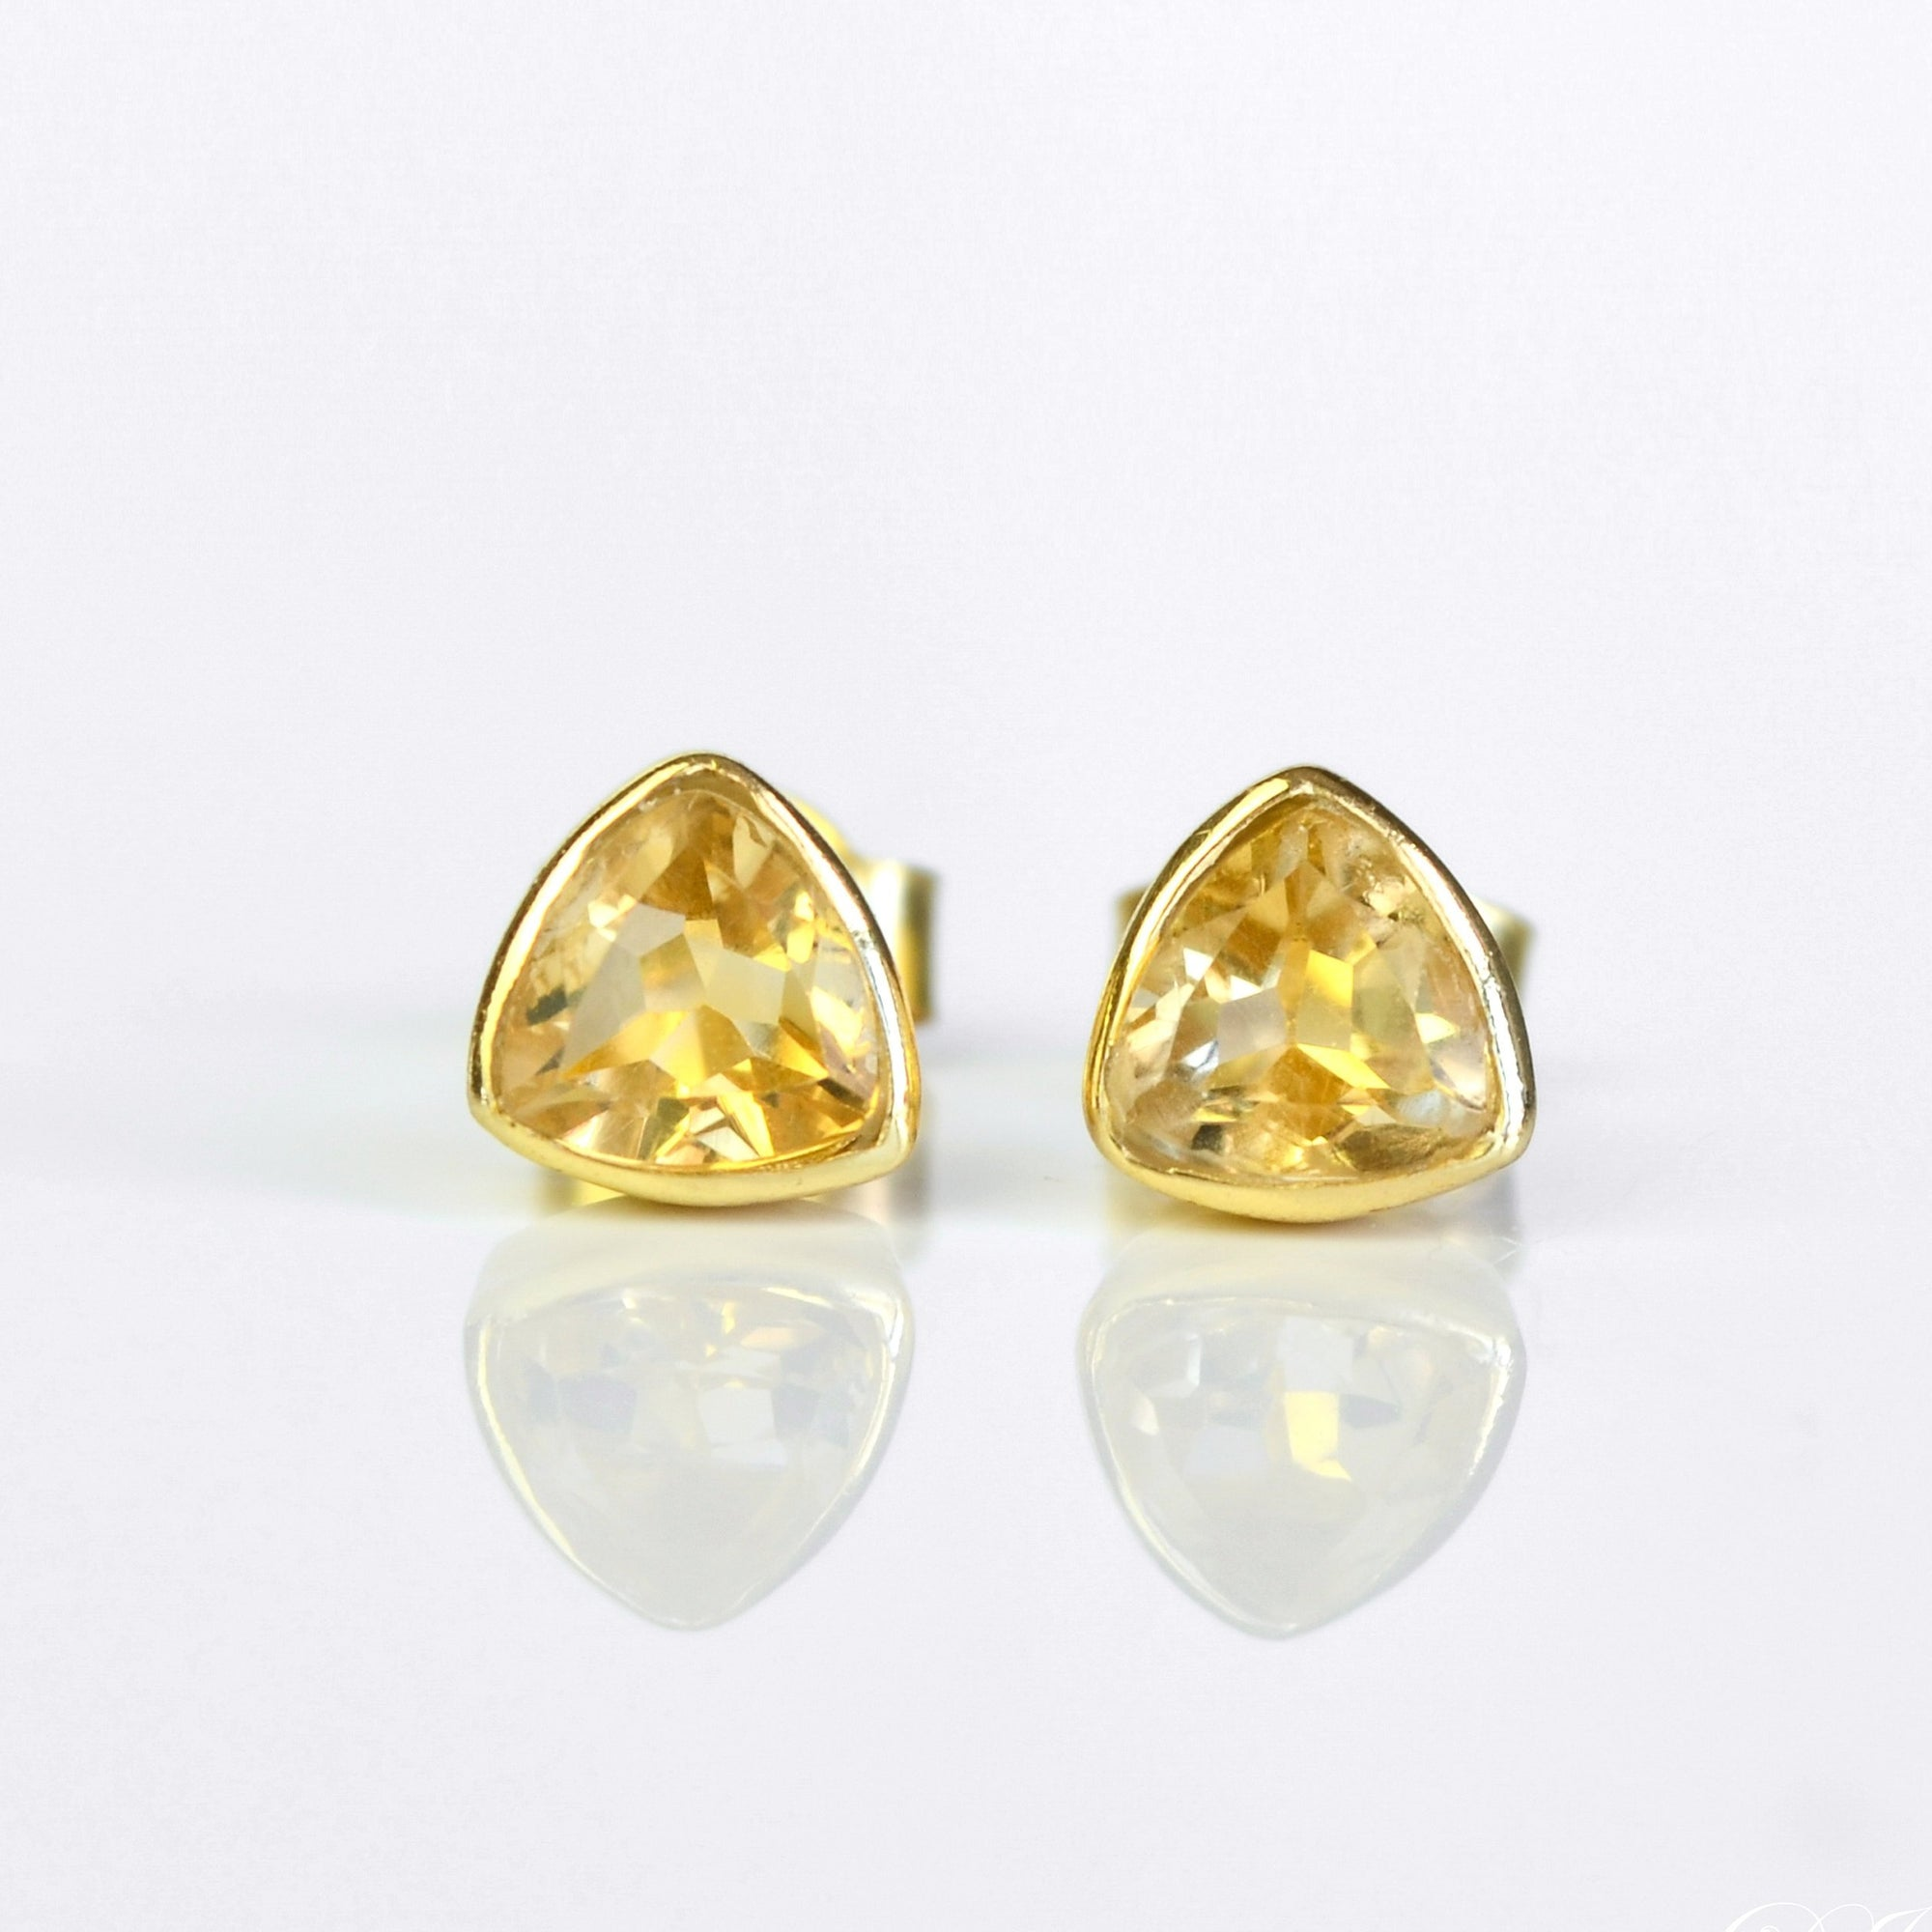 earring everyday gold pin ve you of been solid out for earrings the made searching